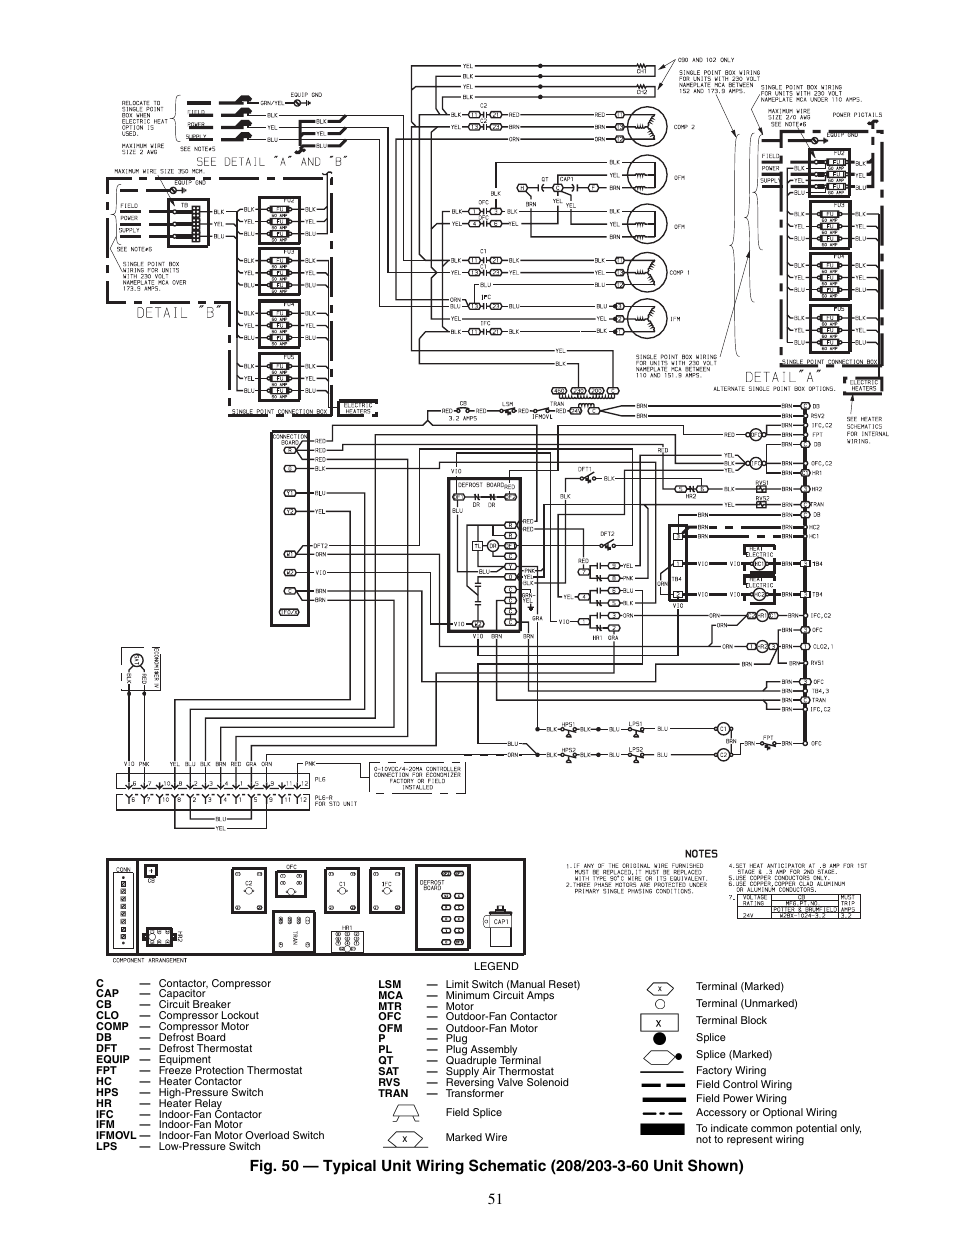 carrier 50tfq008 012 page51 carrier 50tfq008 012 user manual page 51 56 carrier clo board wiring diagram at gsmx.co